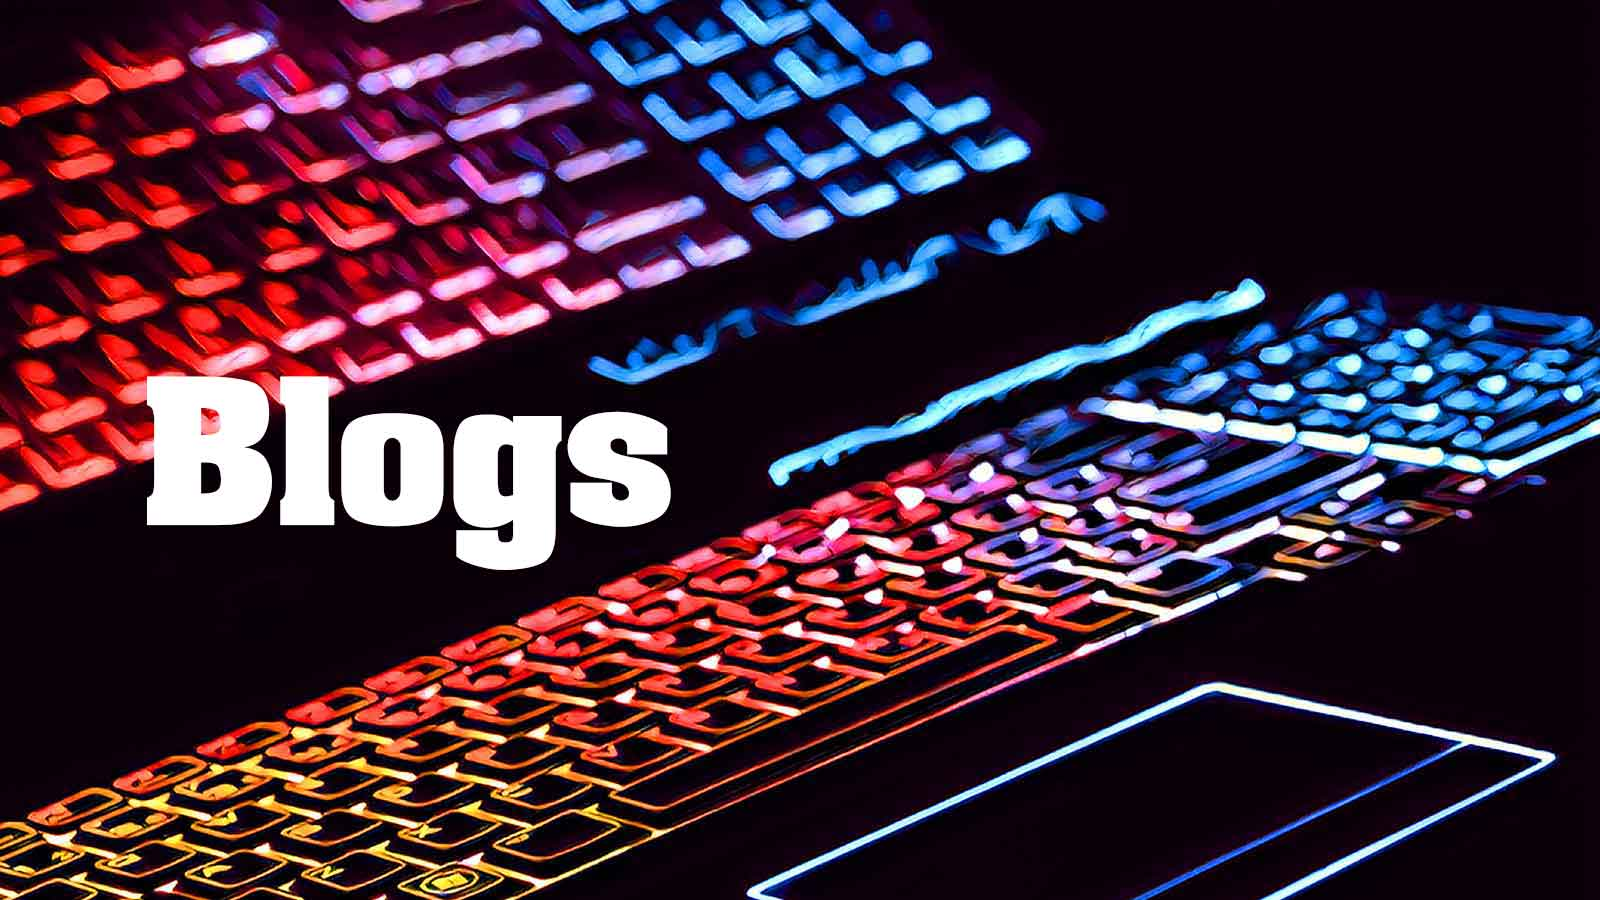 Blogs - Our blog pages is where we put important informations on Photography, social media and blogging in general. If you're a blogger looking for inspiration and ideas to improve your website, take a look at our original articles. #photography #photographytips #photographyinspiration #blogger #blog #blogging #tricks #stockphotodesign